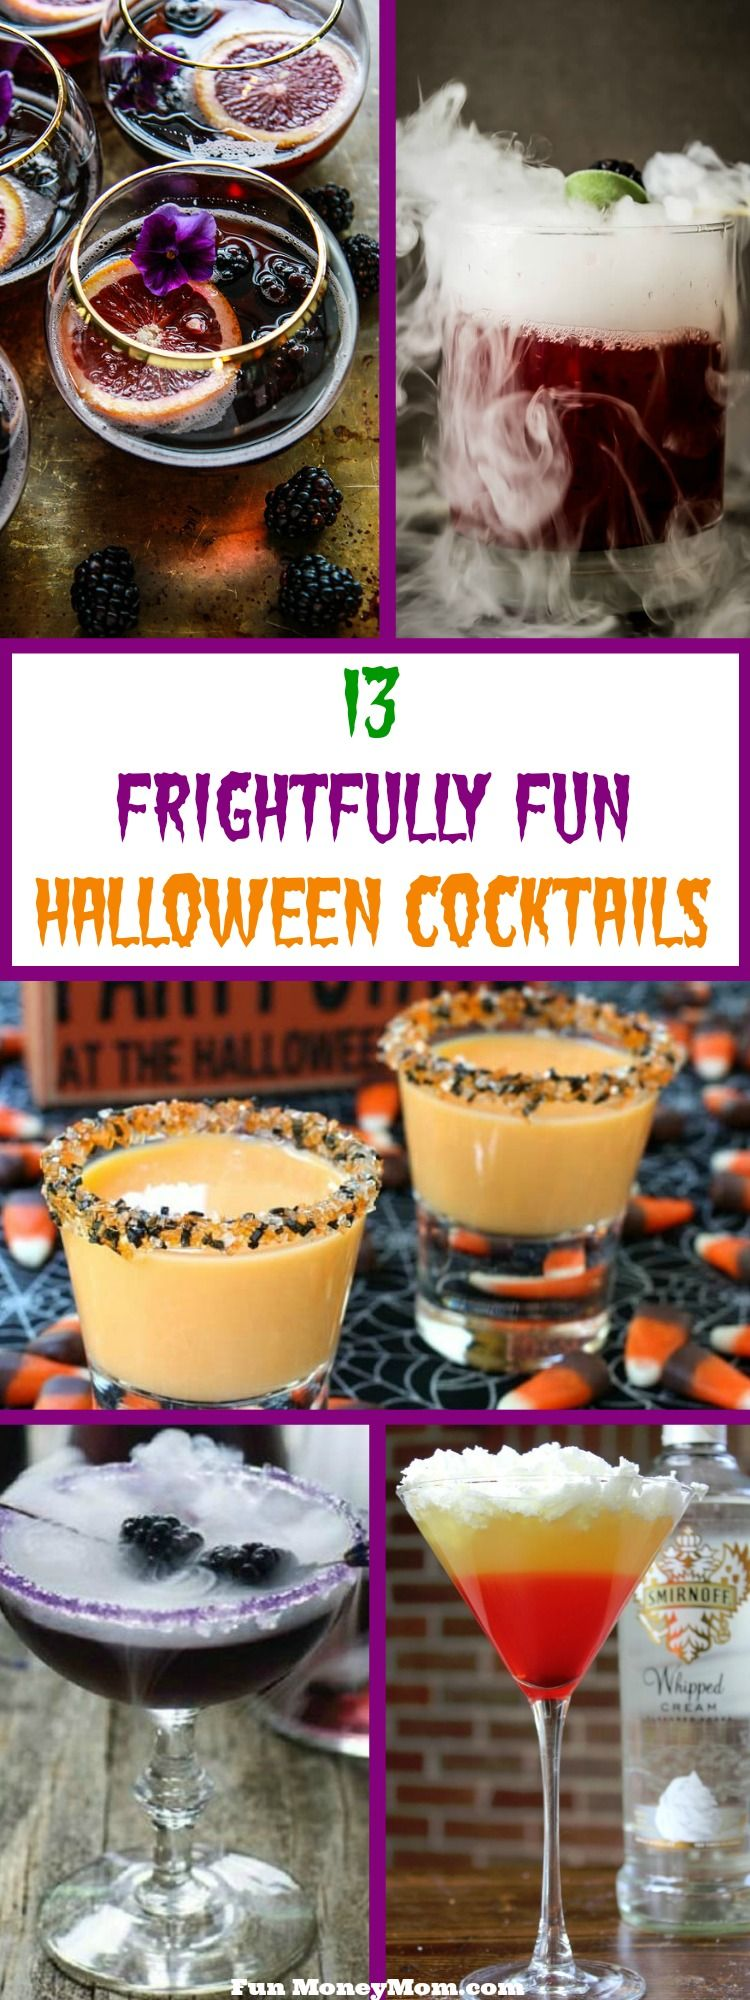 13 Frightfully Fun Halloween Cocktails | Halloween cocktails, Dry ...